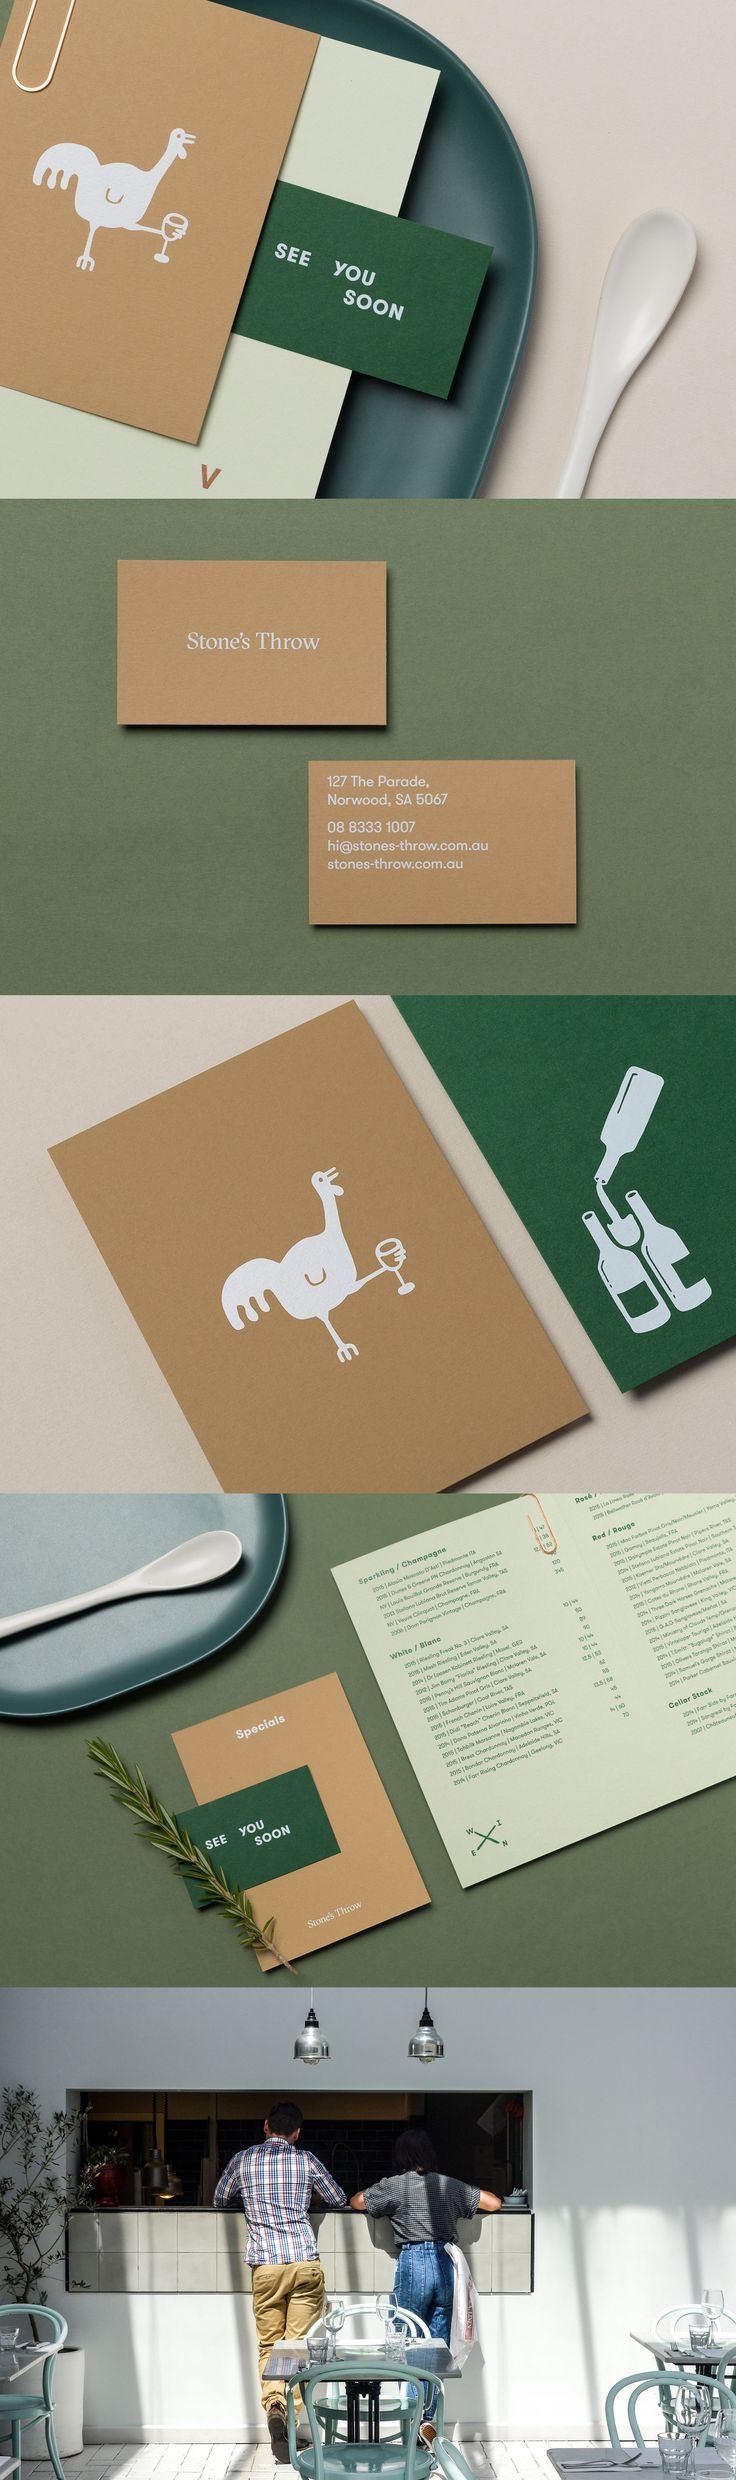 Inspirational Graphic Design For Stones Throw Restaurant And Bar